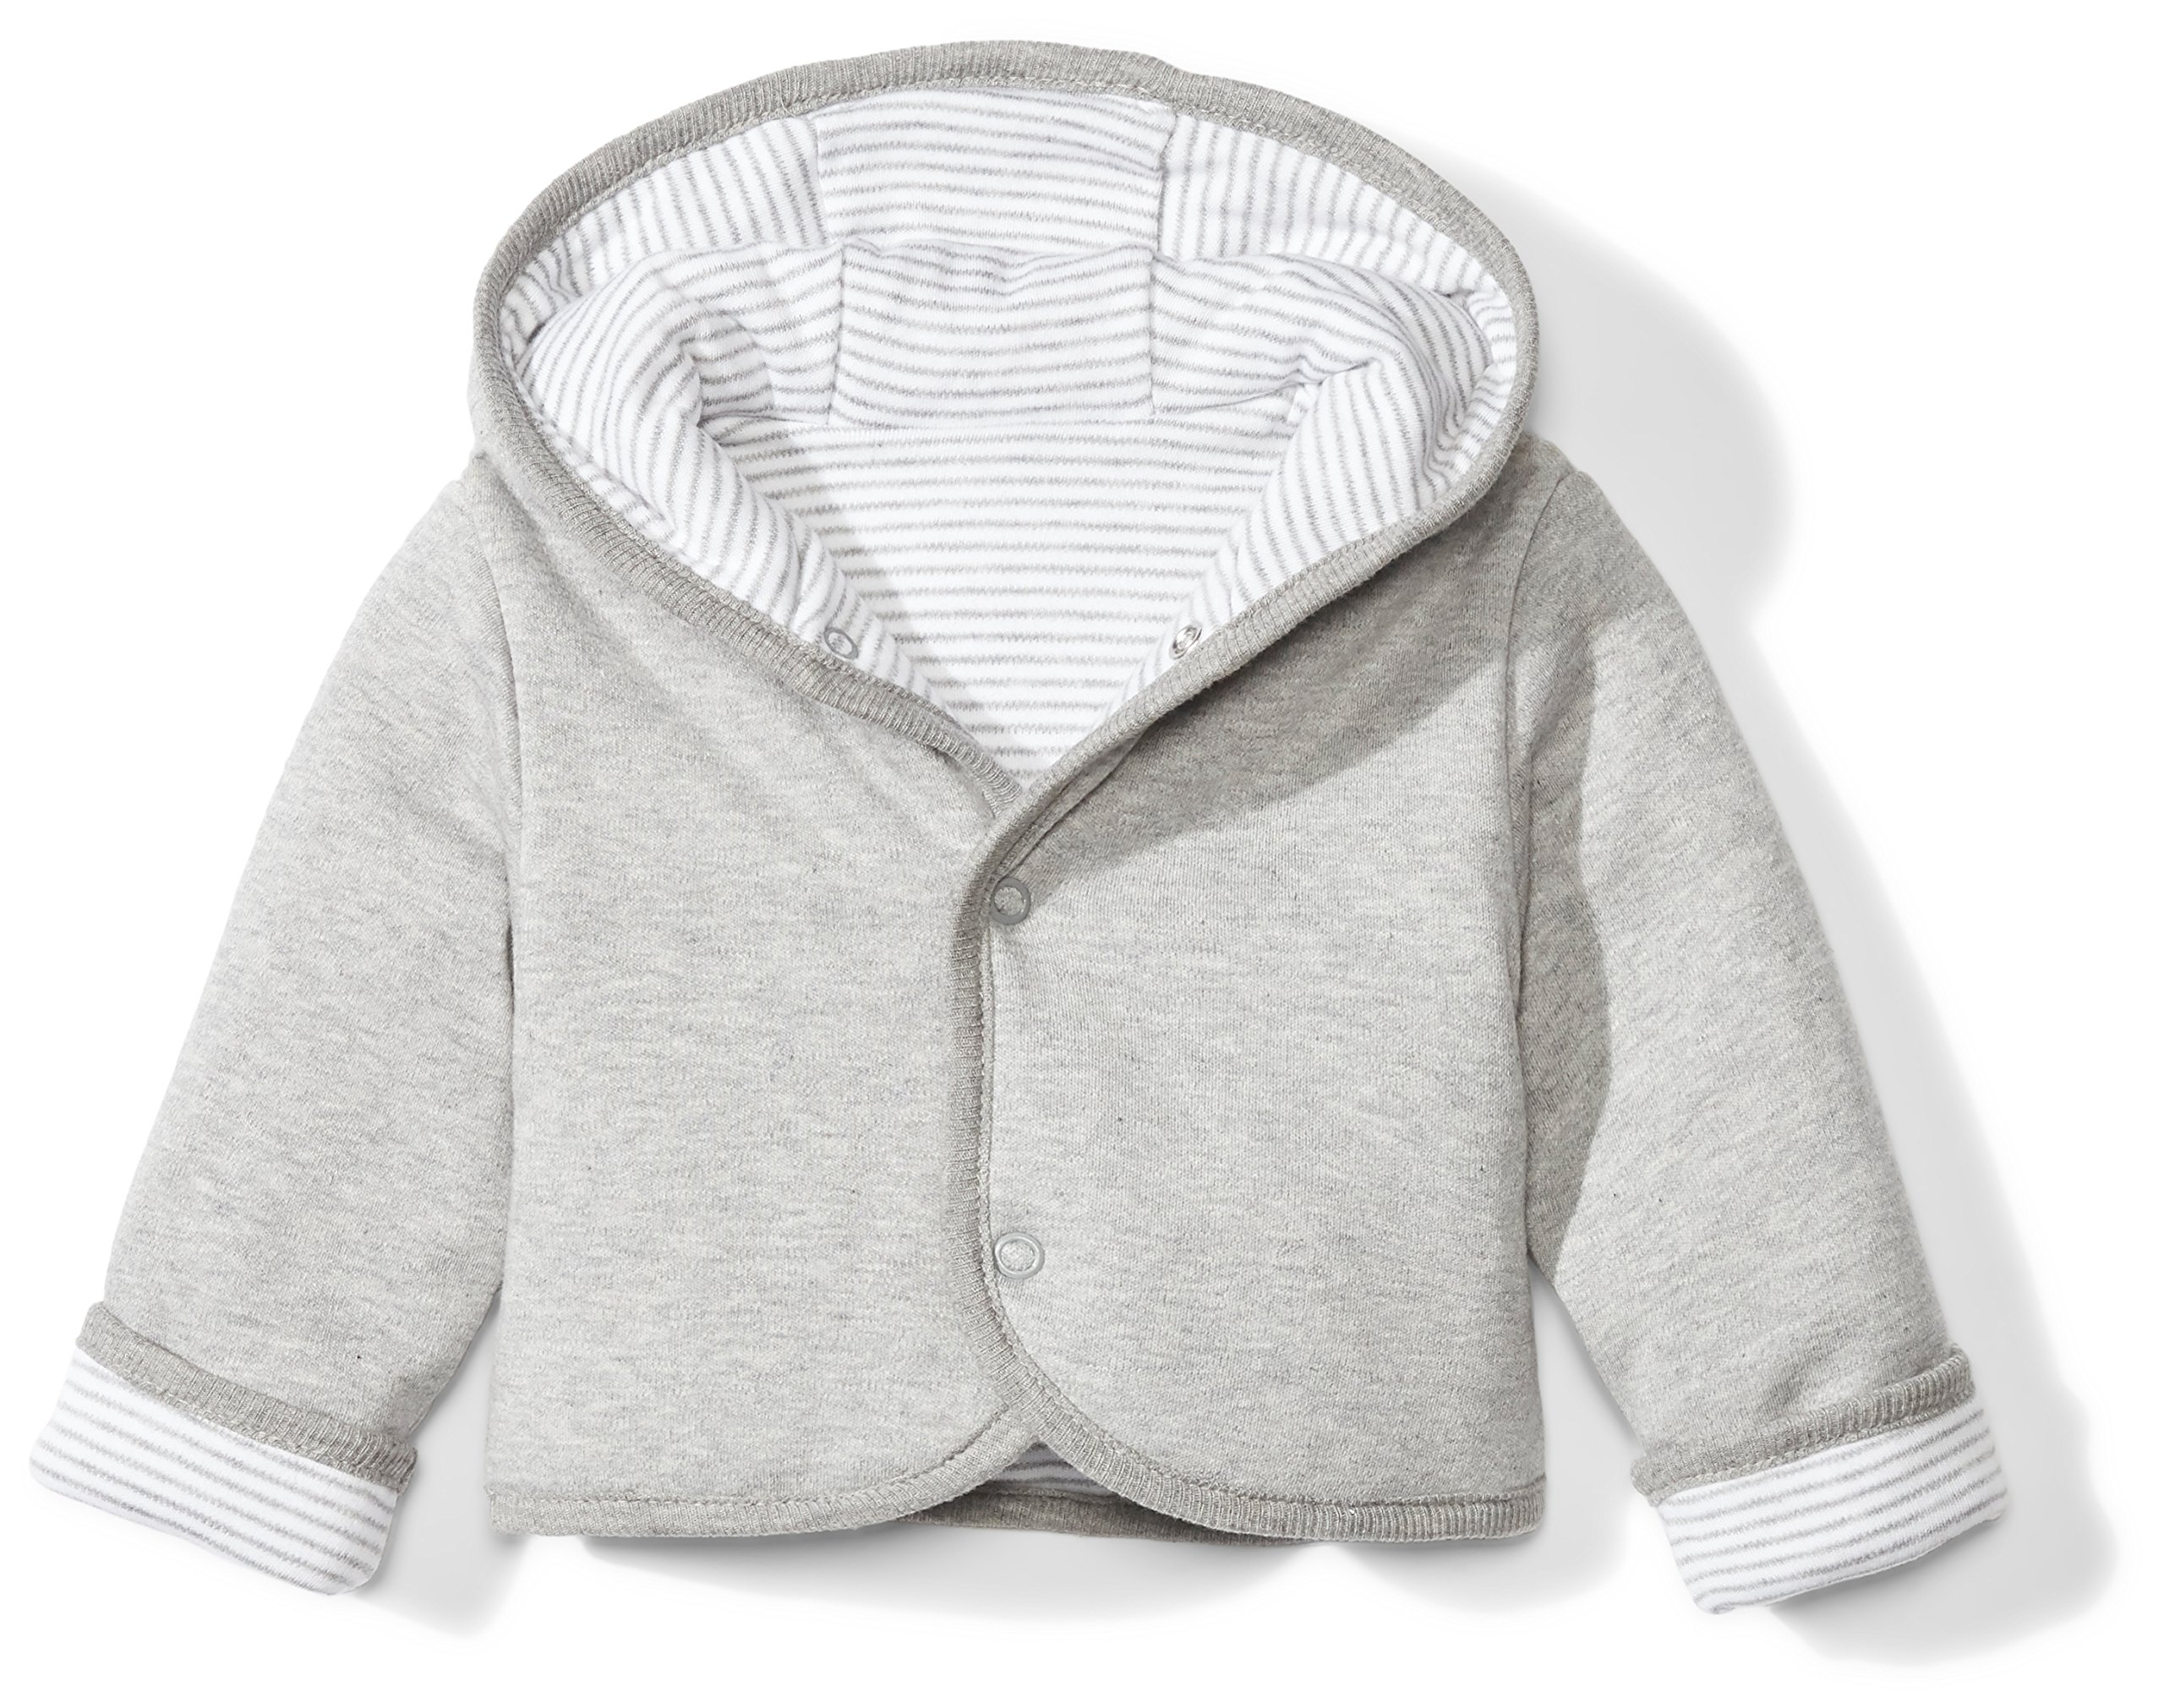 Moon and Back Baby Reversible Jacket with Hood, Grey Heather, 0-3 Months by Moon and Back